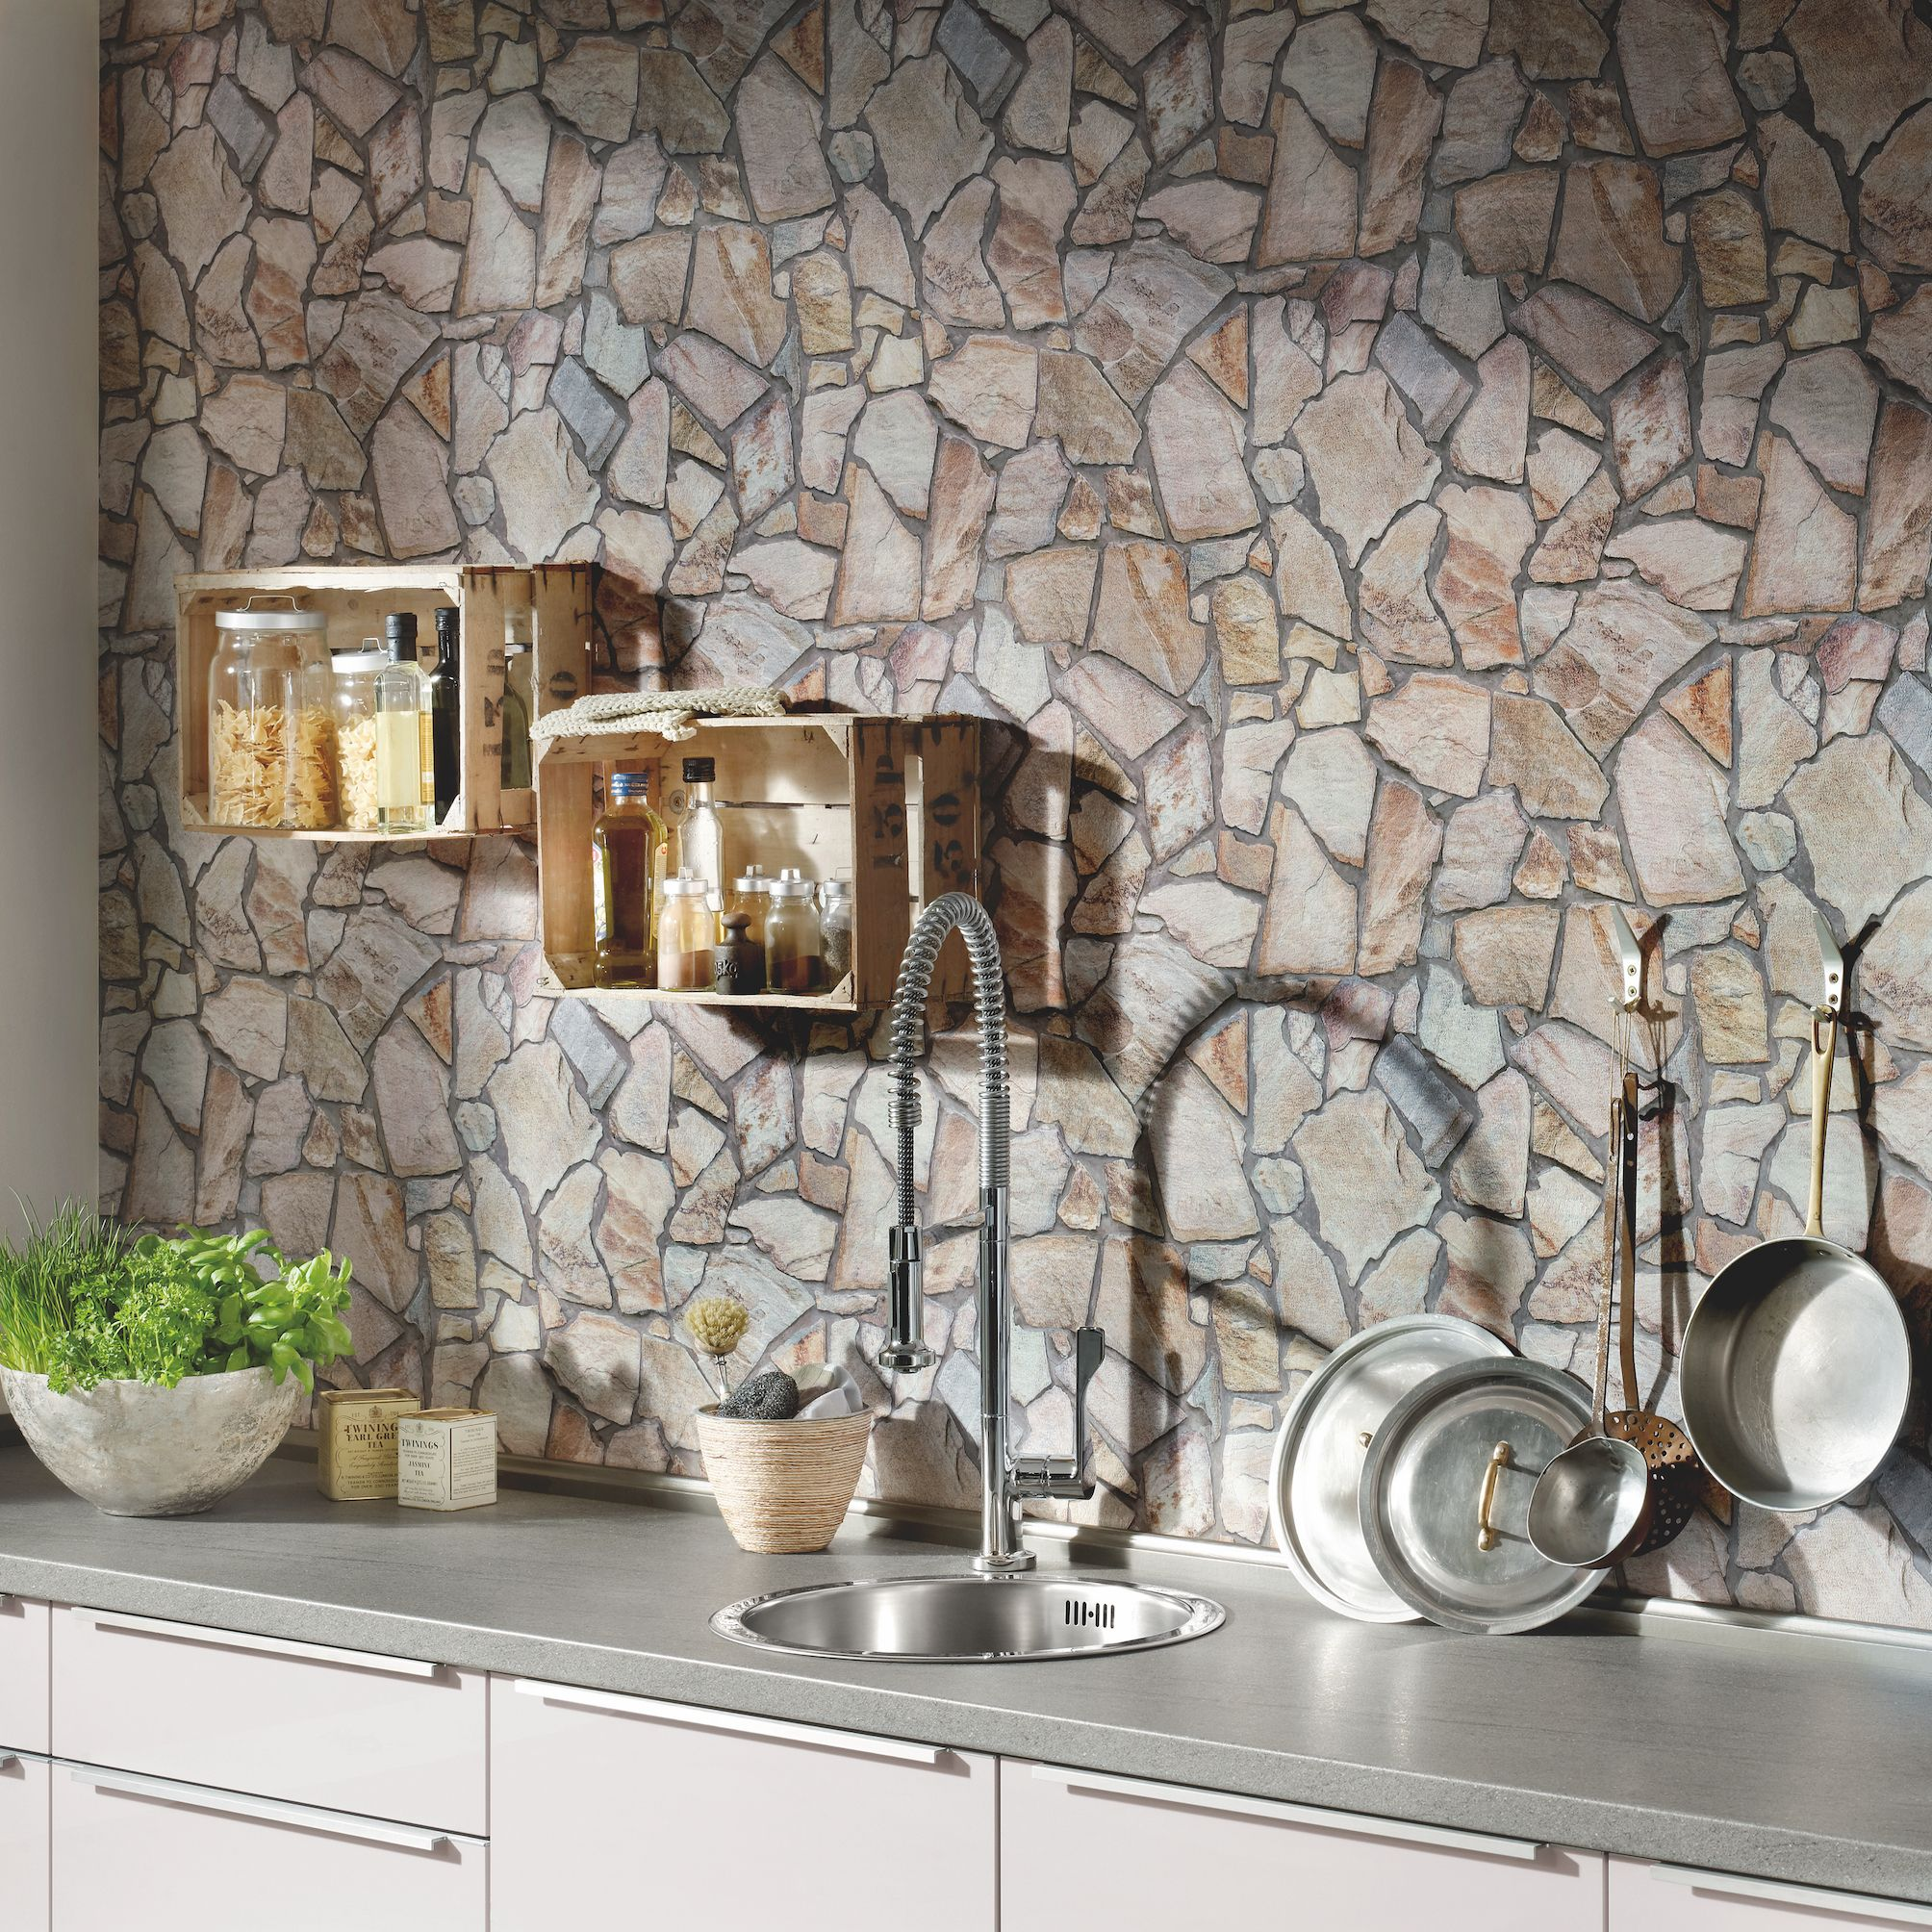 Benefits Of Using Wallpaper In The Kitchen Kitchen Wallpaper Ideas